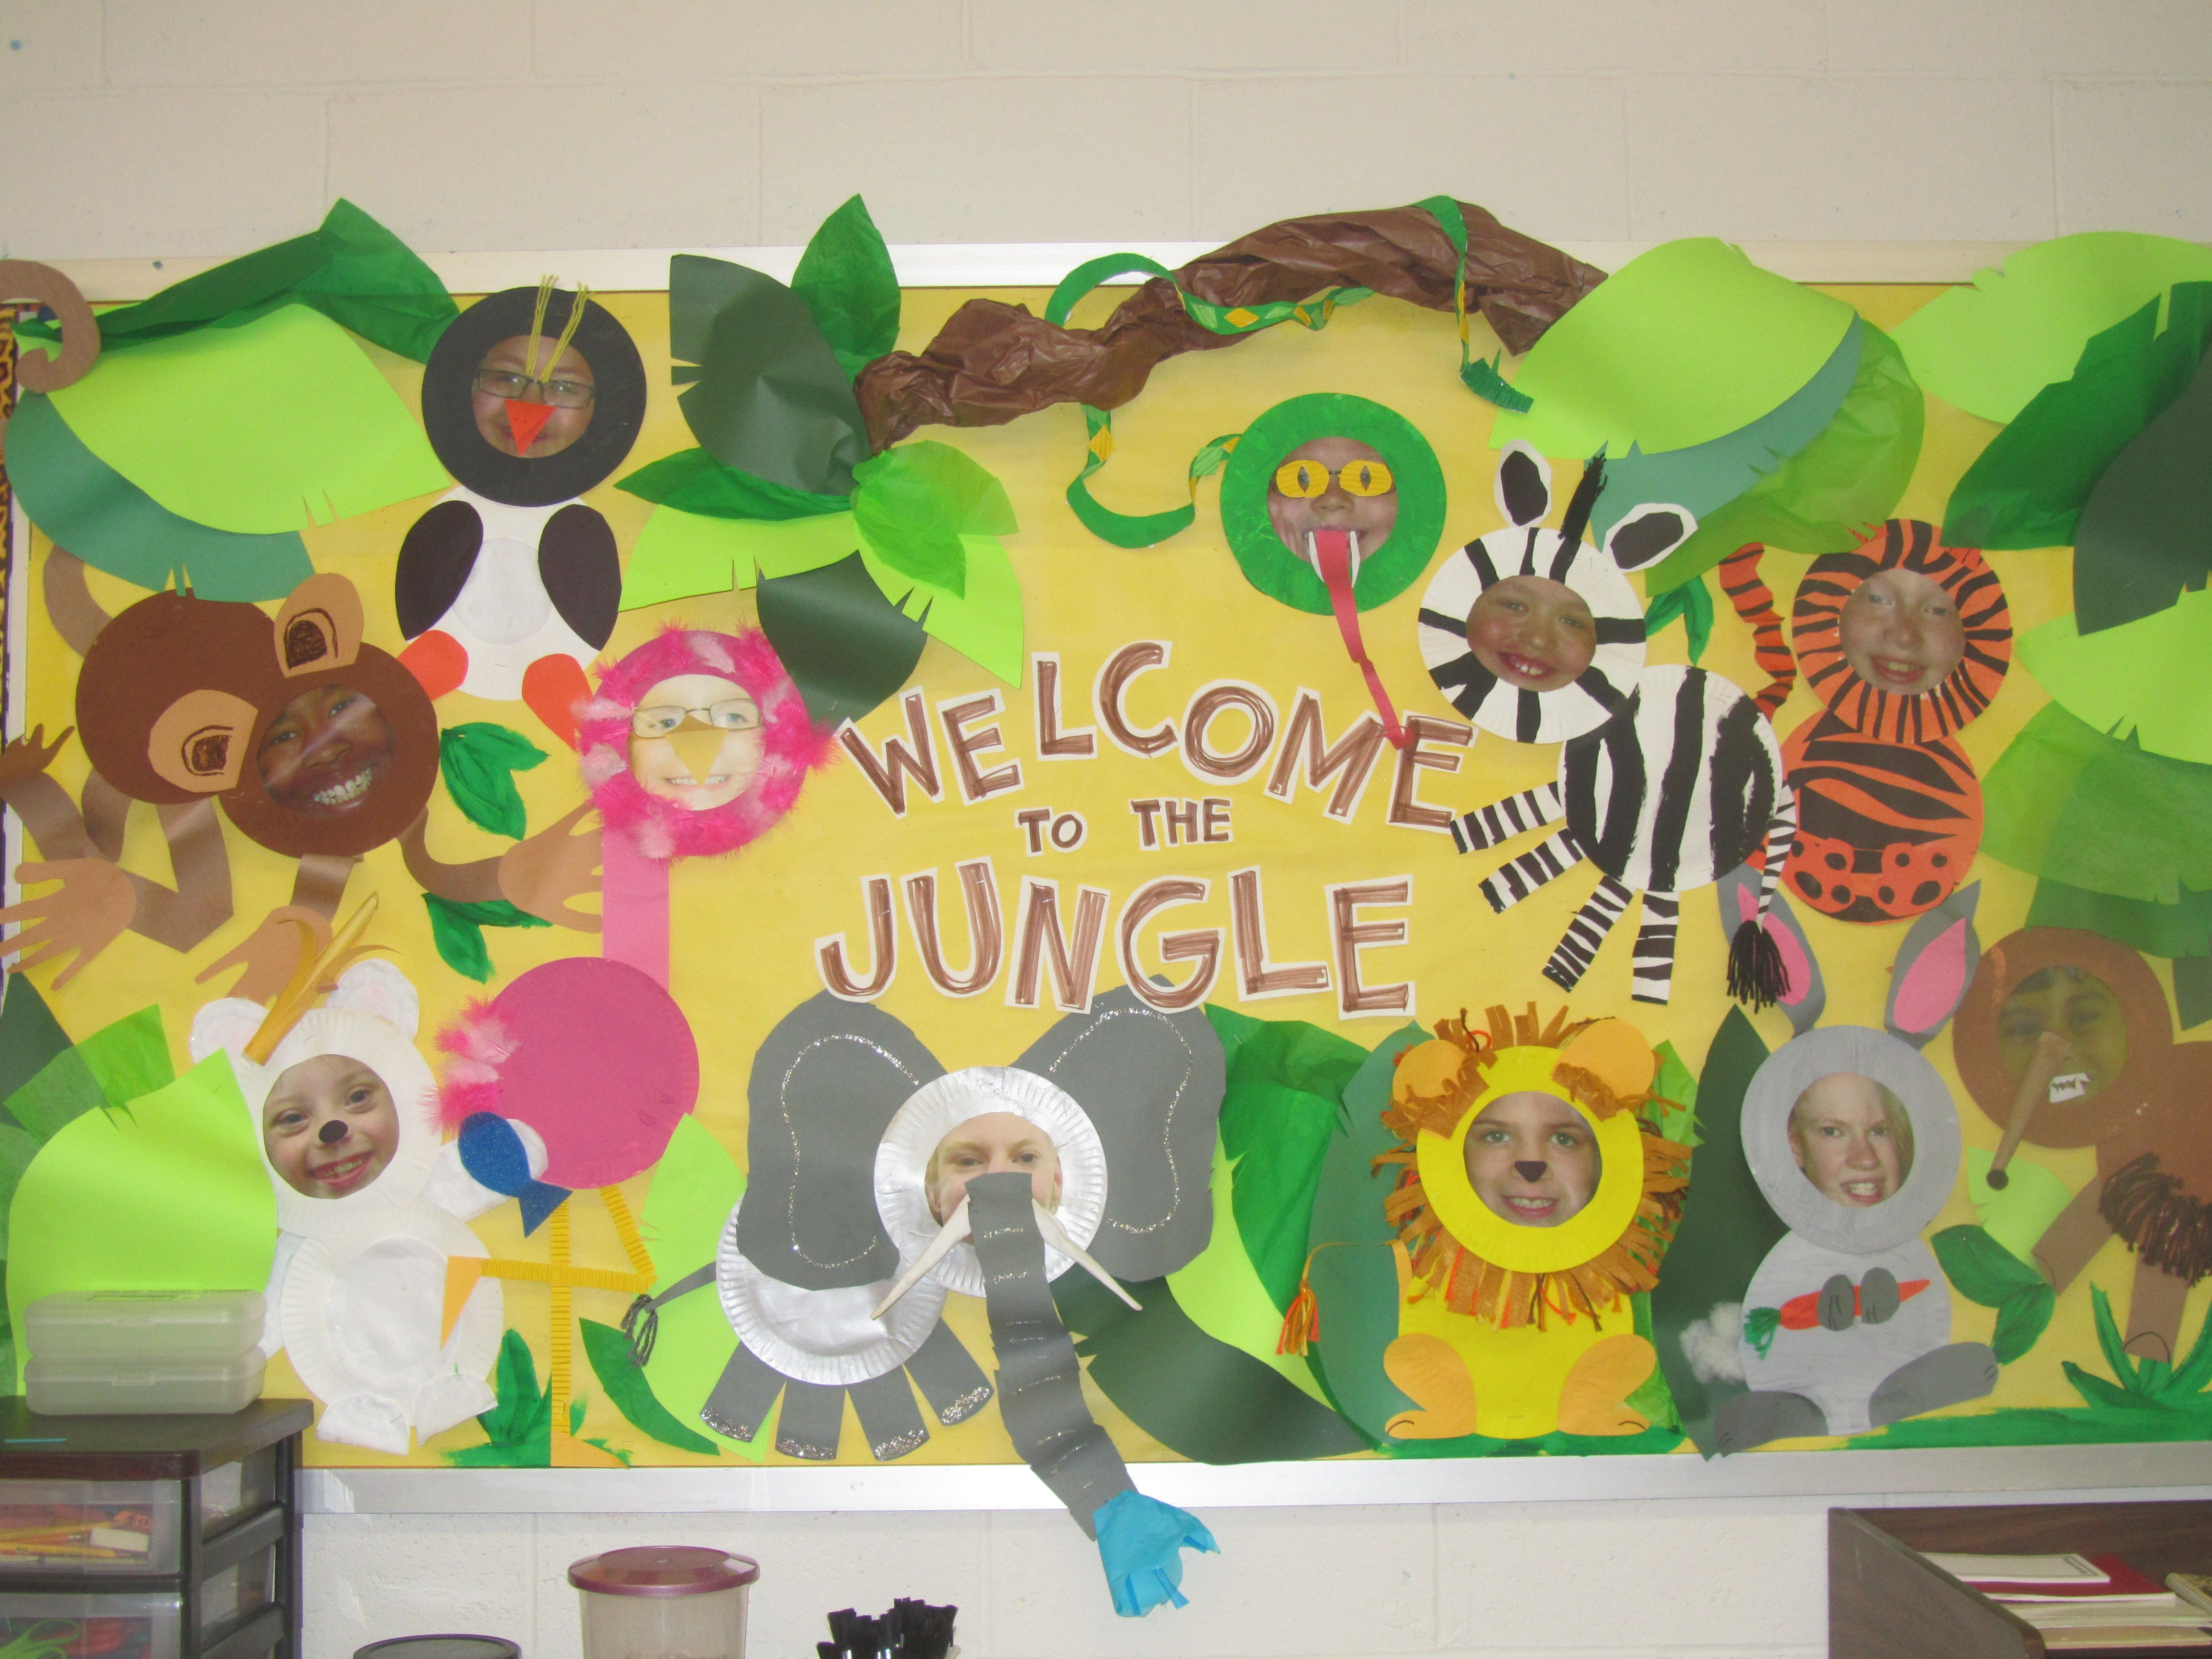 Welcome To The Jungle Board Made Out Of Student Work